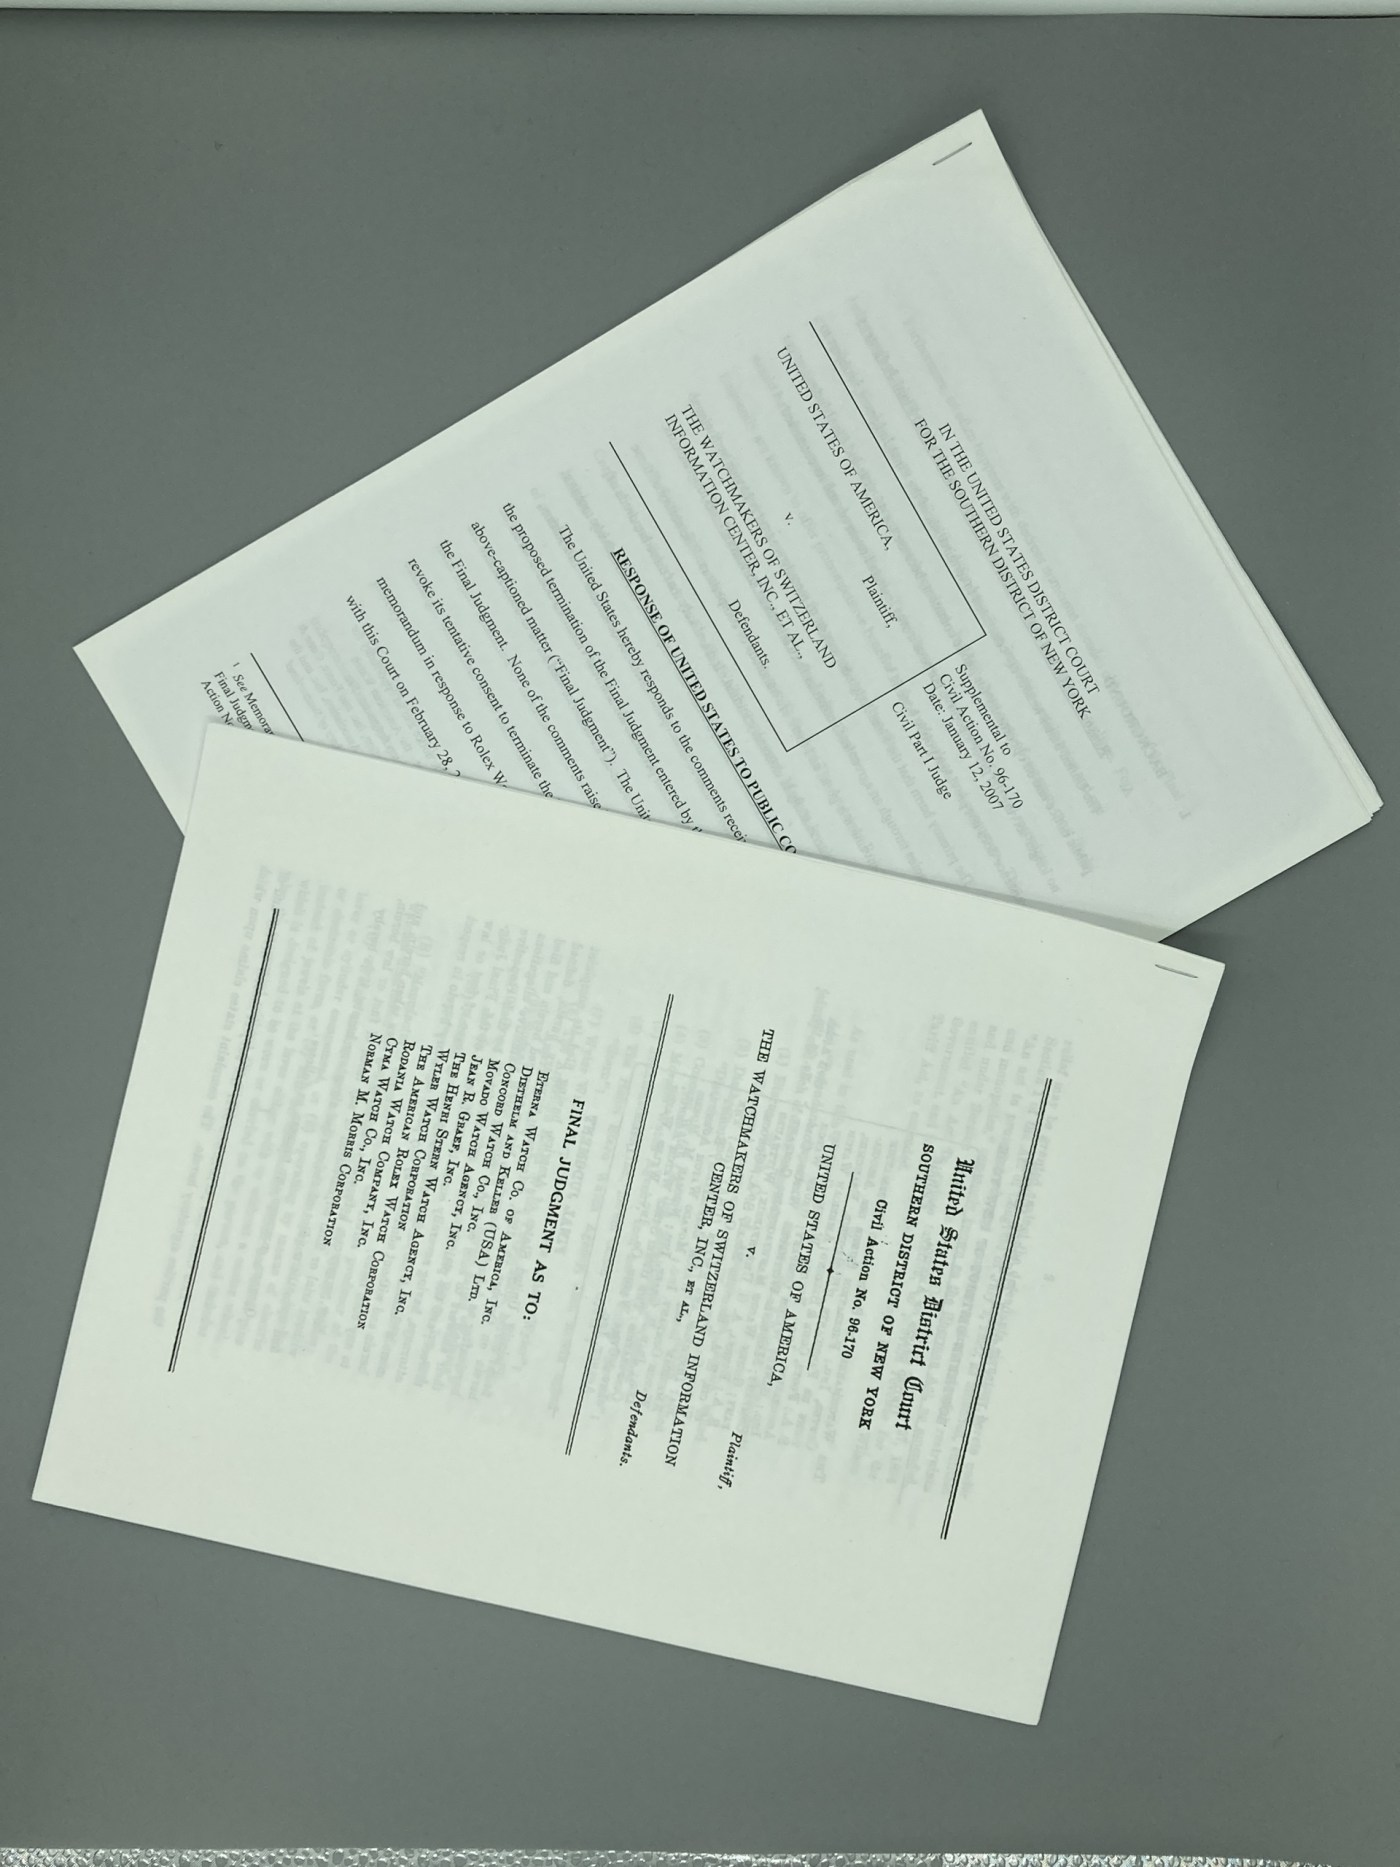 Documents from the original consent decree (1960) and its repeal (2007)